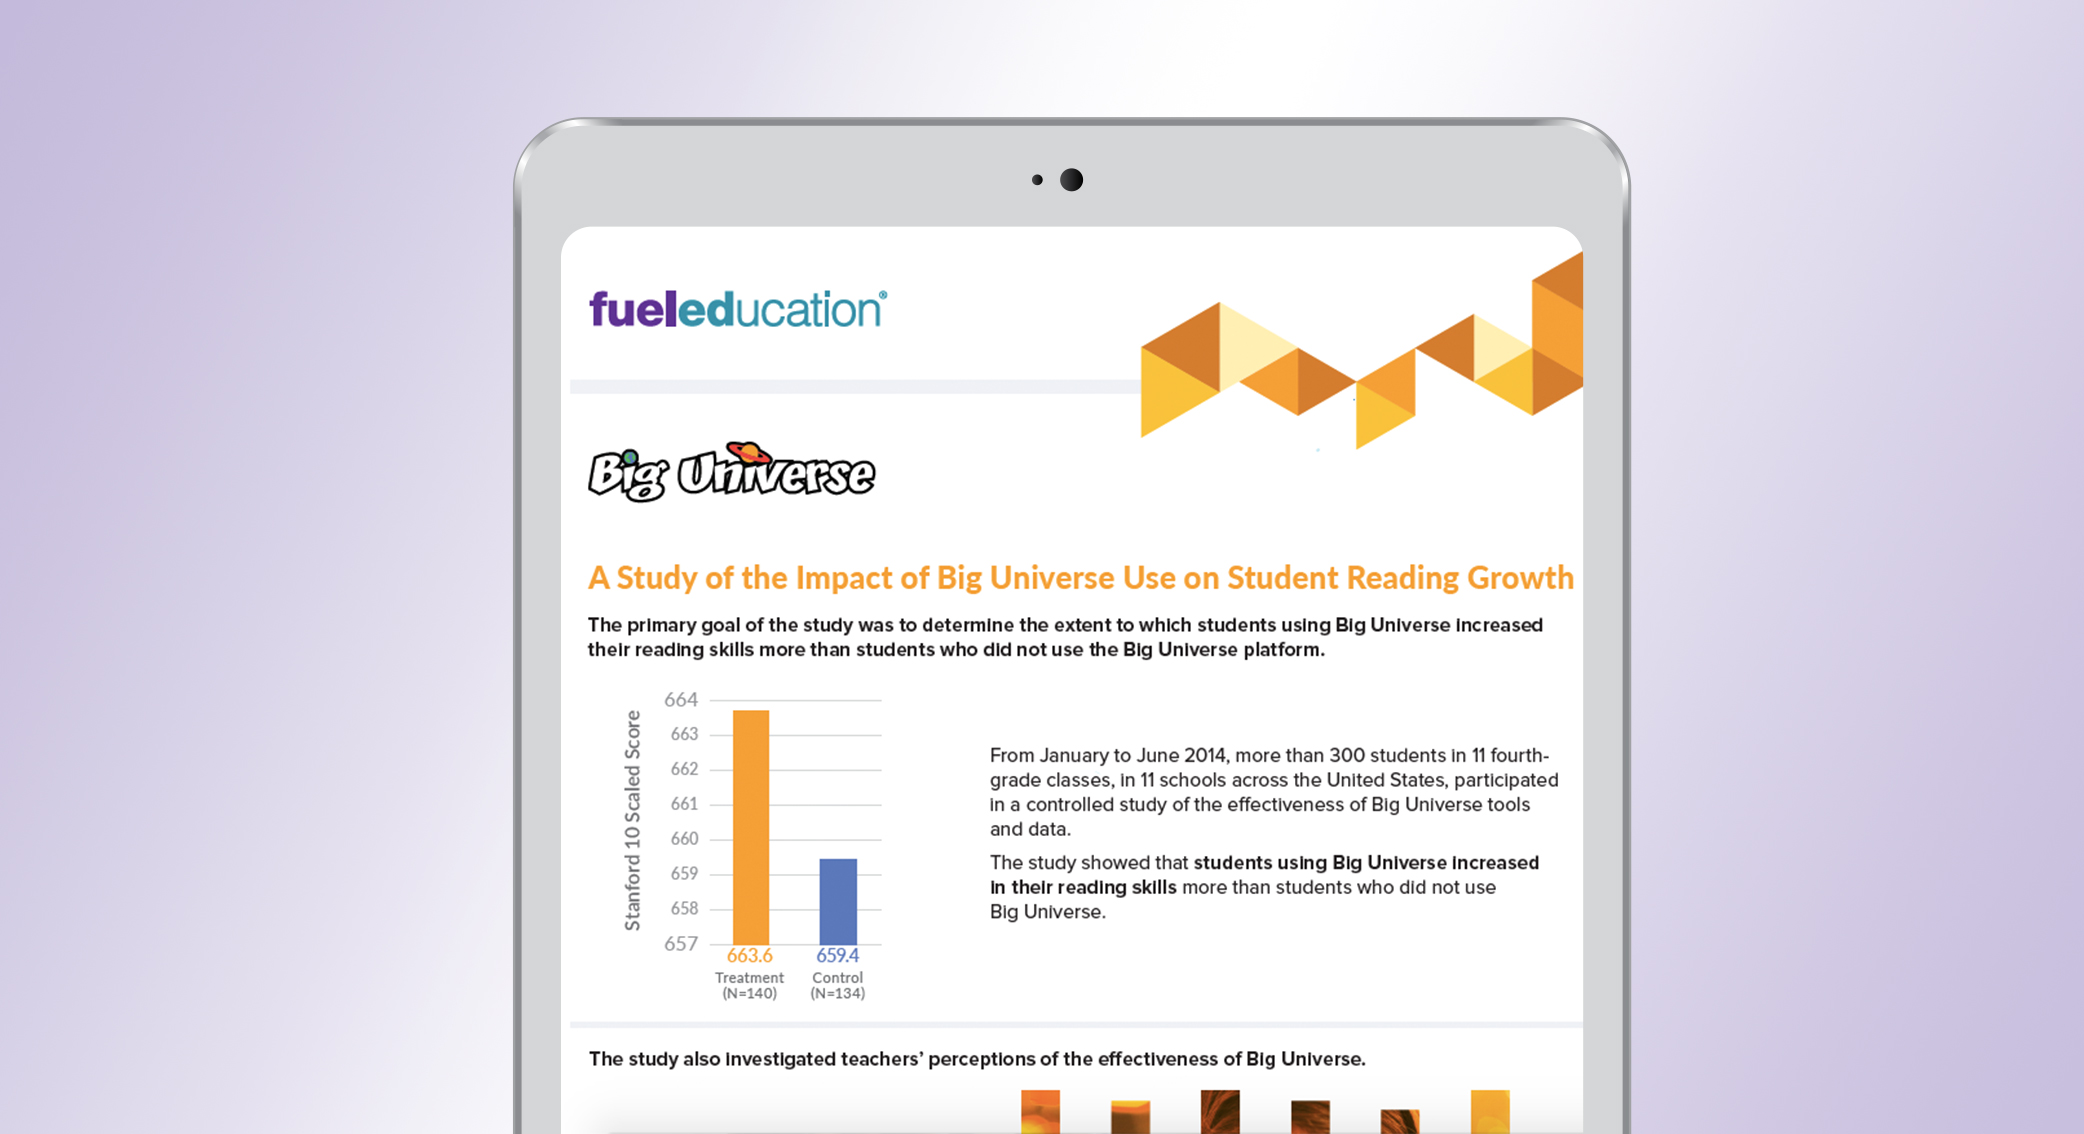 A Study of the Impact of Big Universe Use on Student Reading Growth Brochure